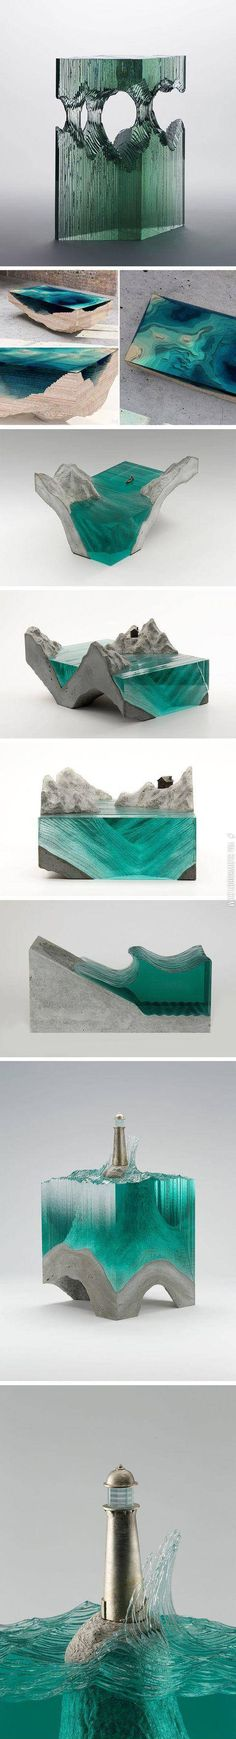 Amazing glass layered sculptures